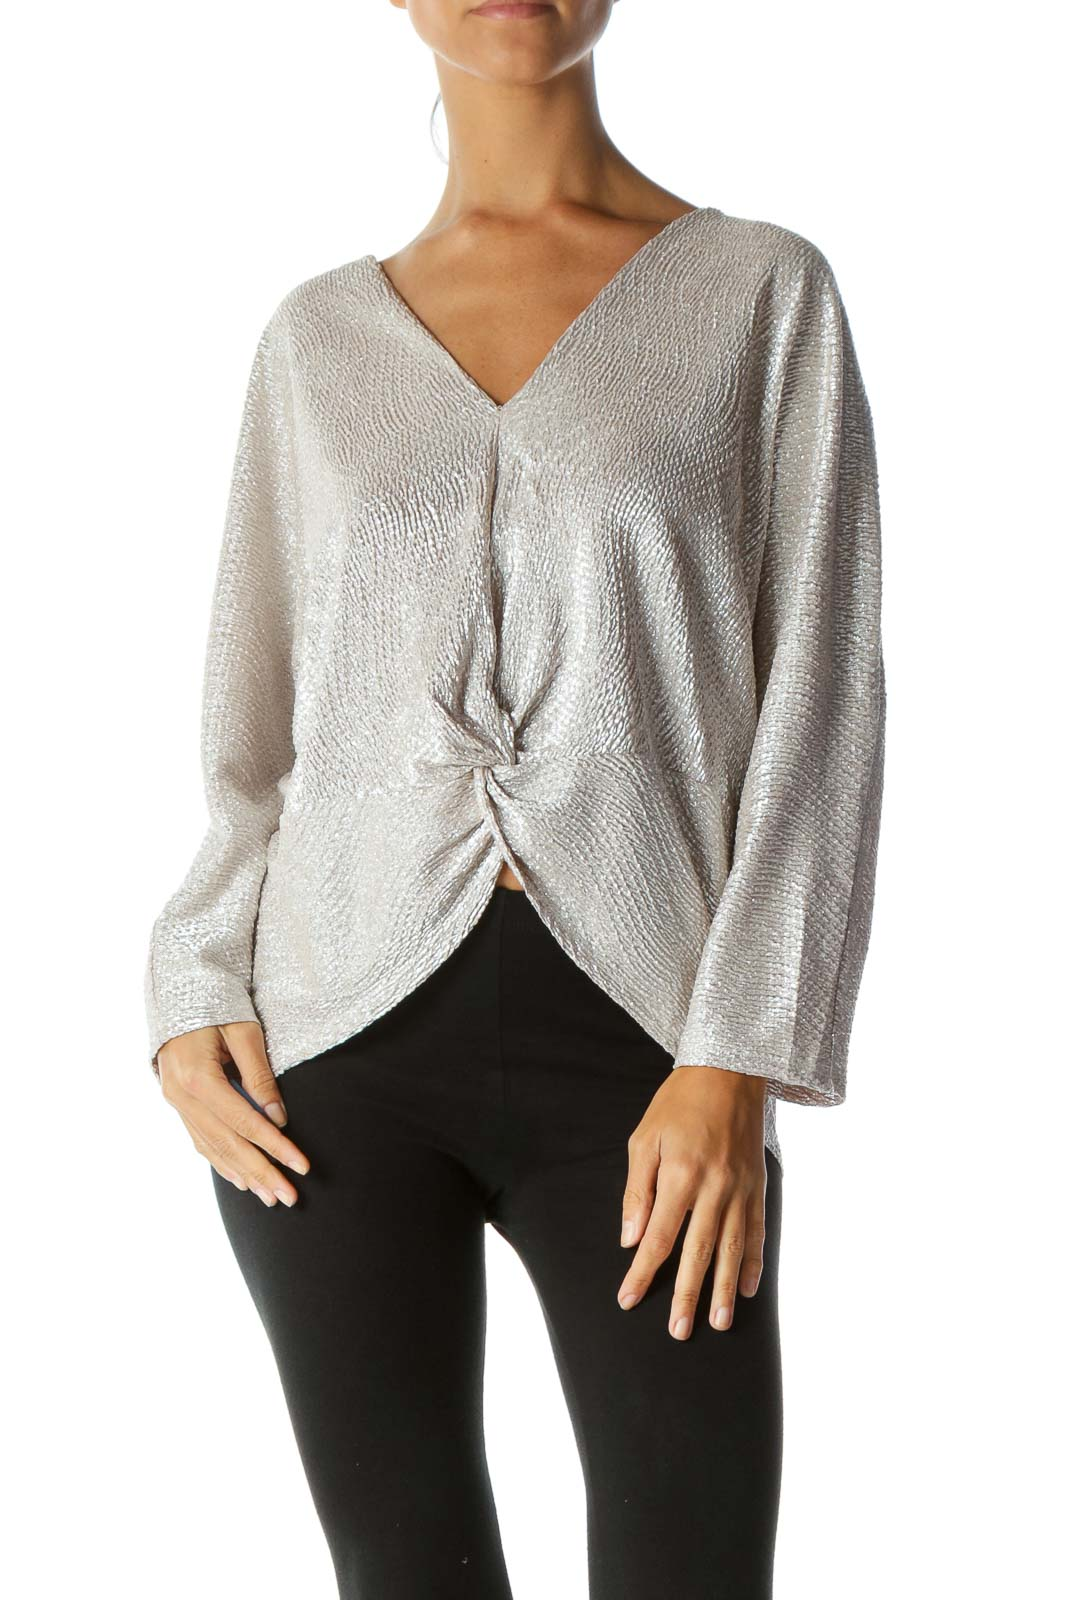 Silver Beige V-Neck Shiny Textured Knot Detail Bat-Sleeve Stretch Top Front